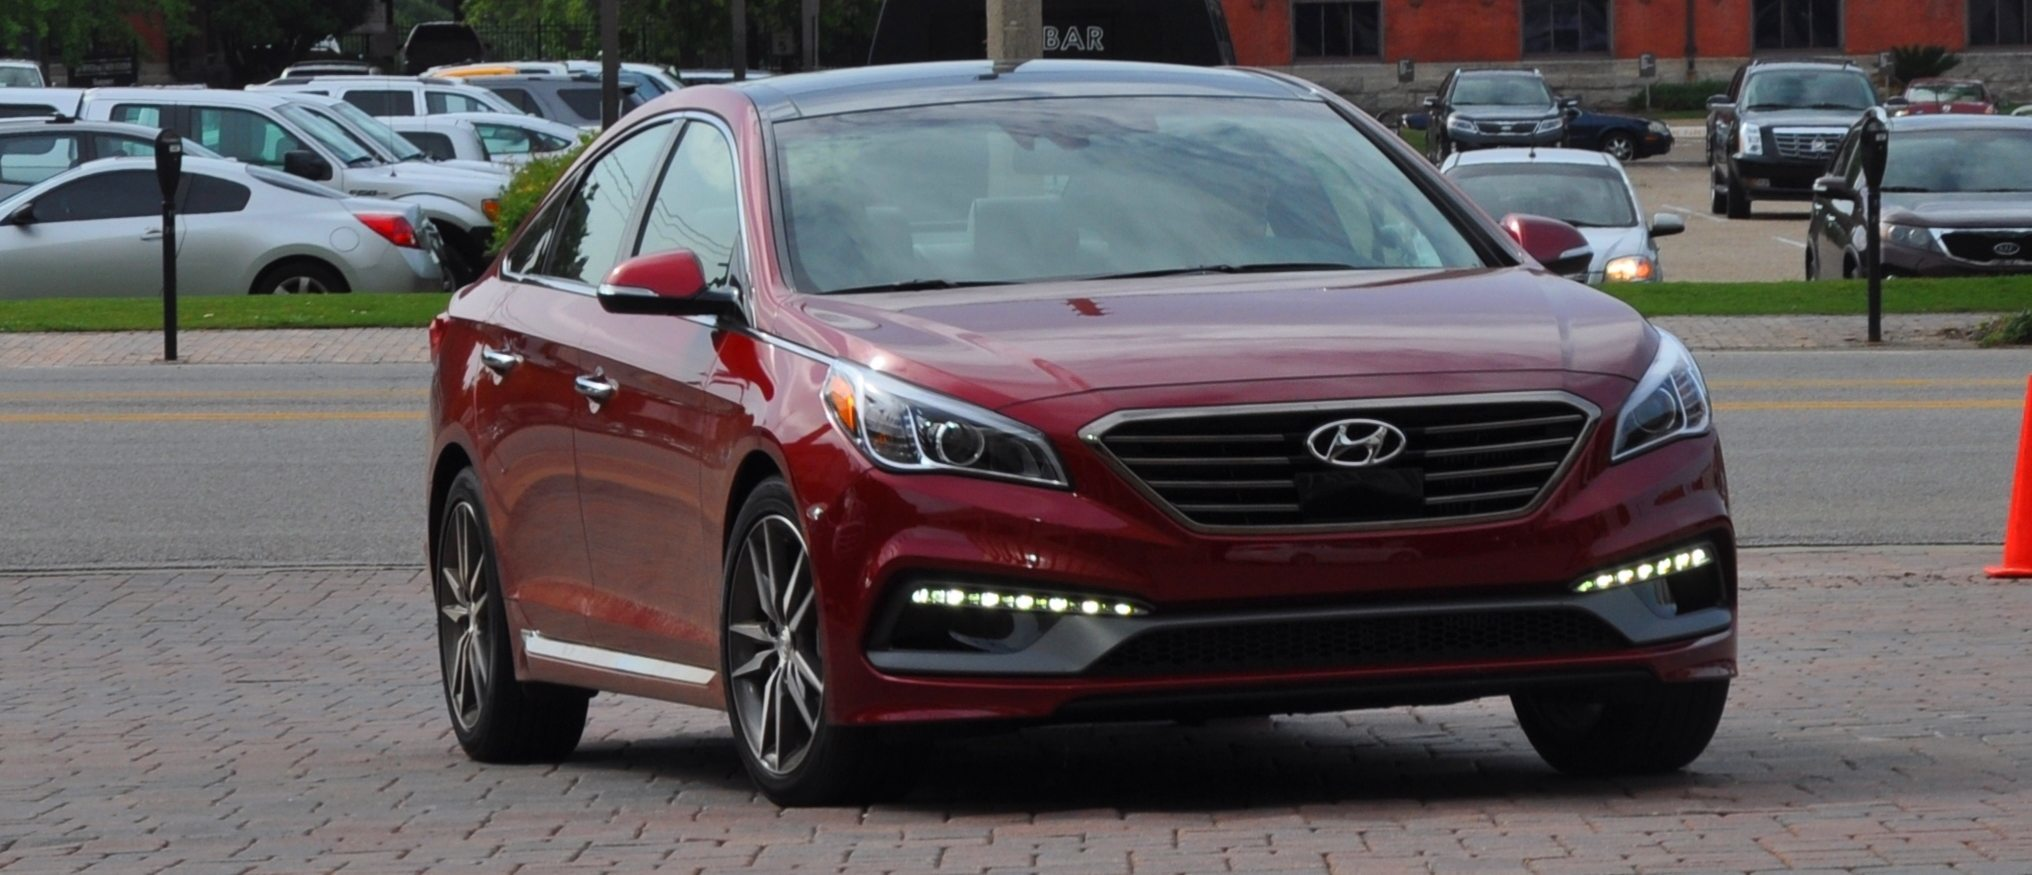 Road Test Review 2015 Hyundai Sonata Interior Focus